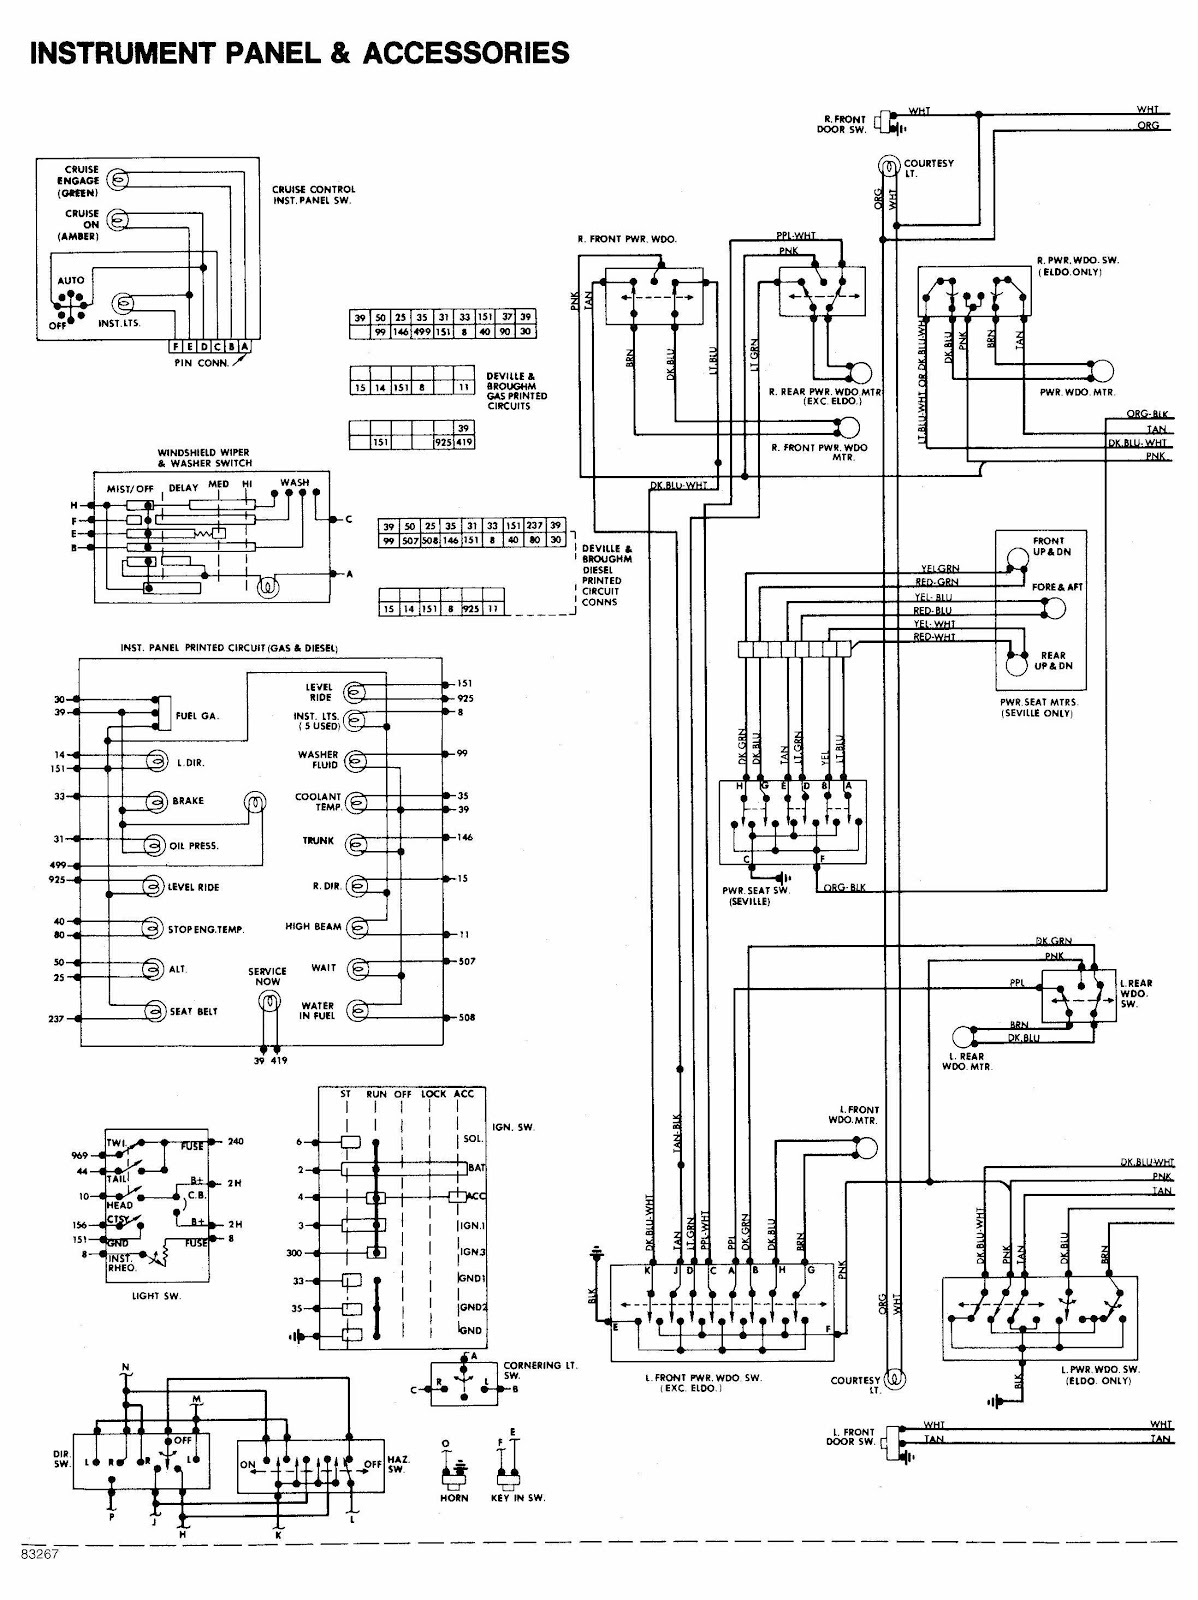 Cadillac Deville Instrument Panel And Accessories Wiring Diagram on 2003 Ford Taurus Fuse Diagram